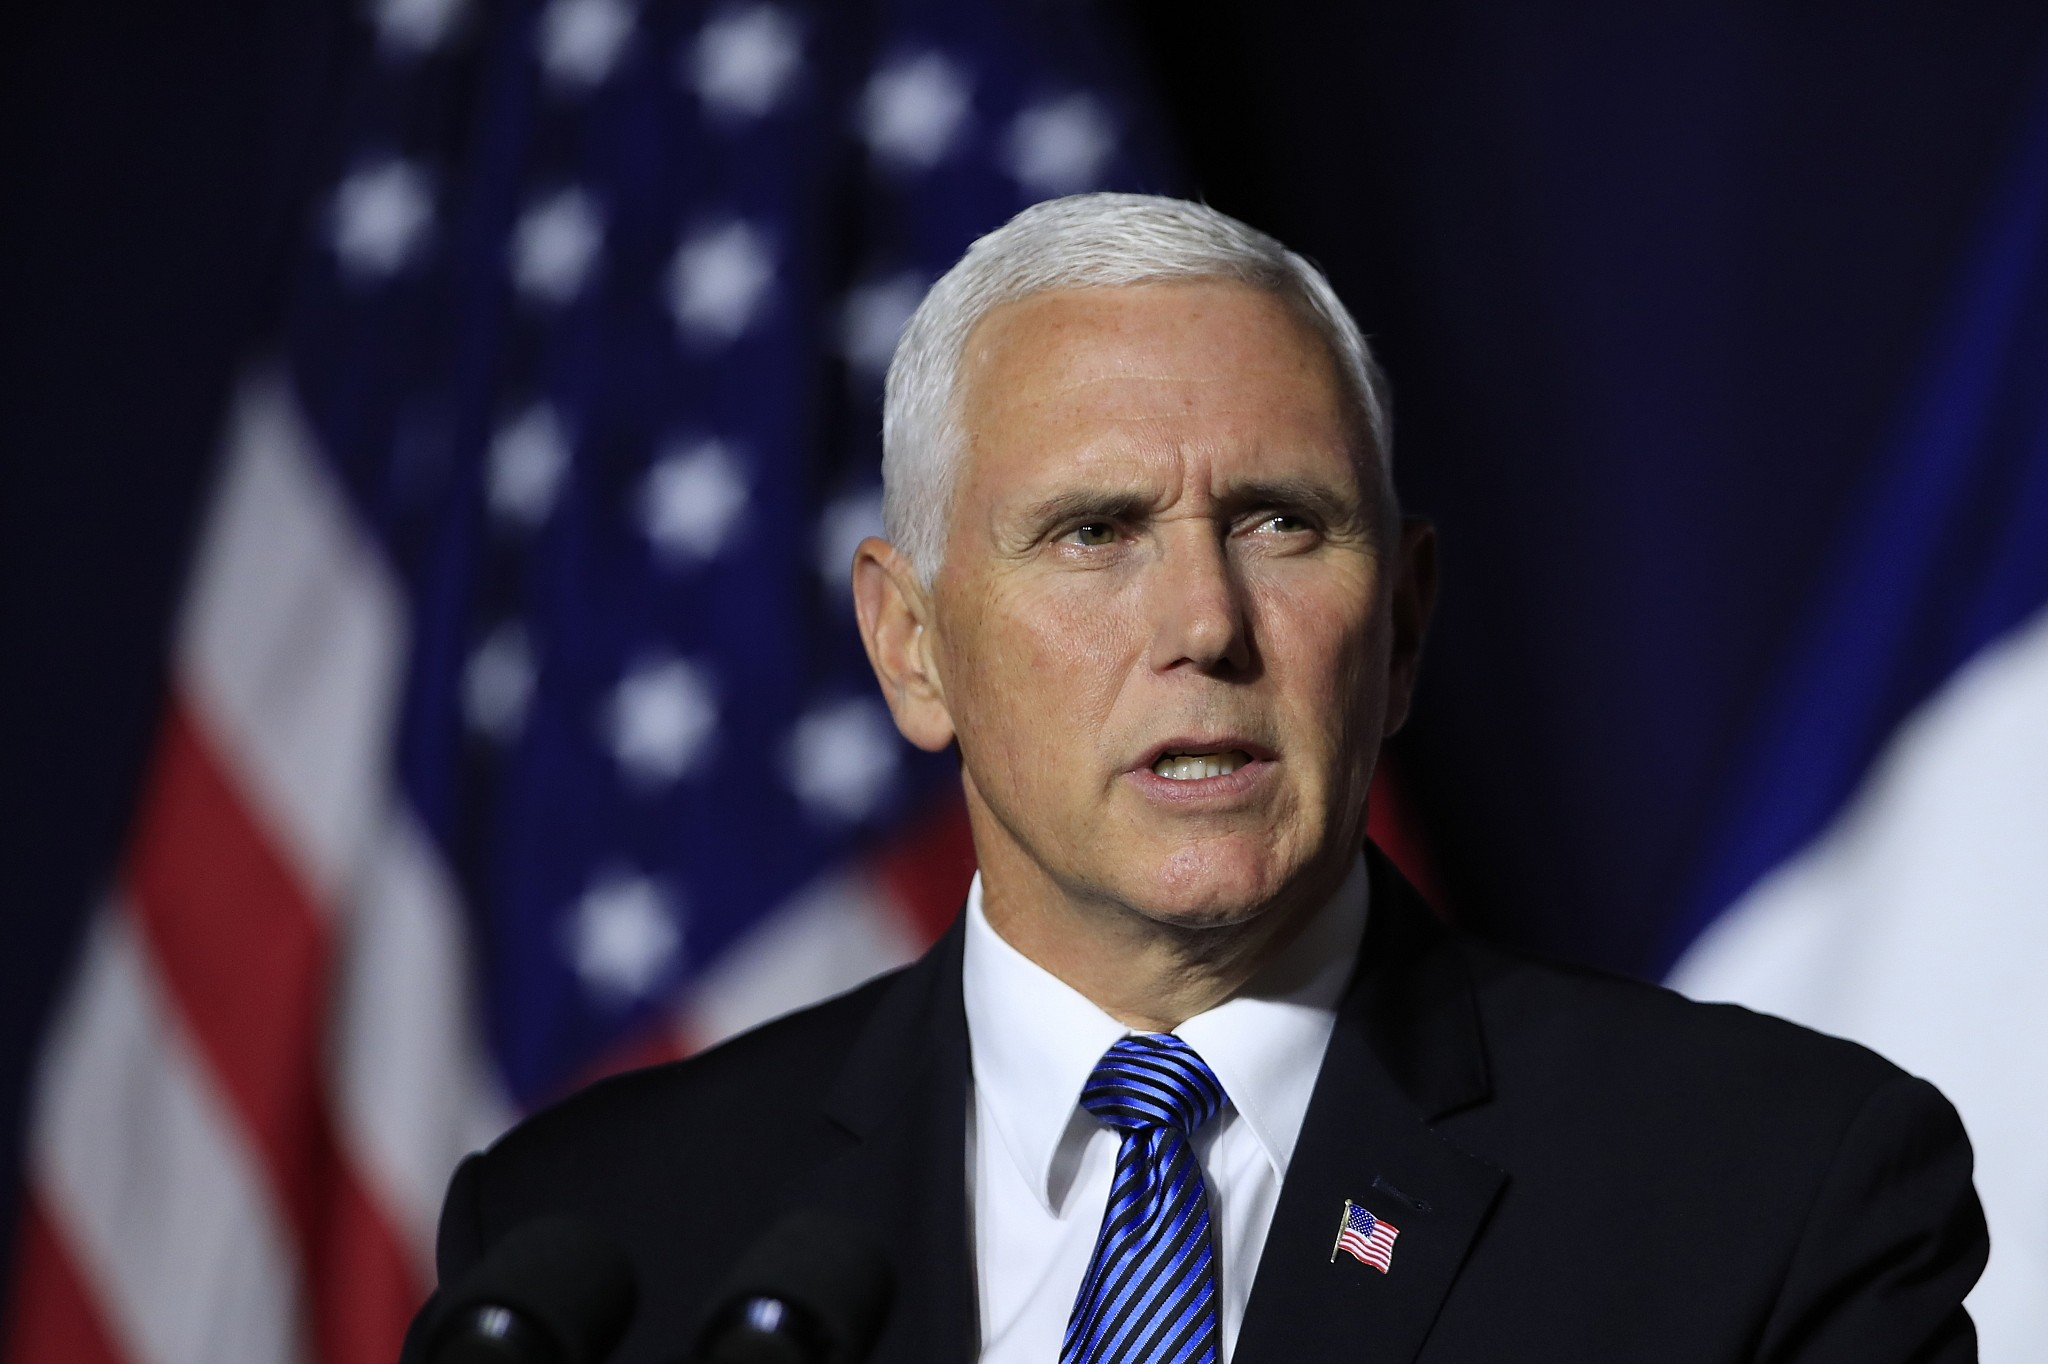 Pence Slams China's 'opaque' Checkbook Diplomacy, Trade